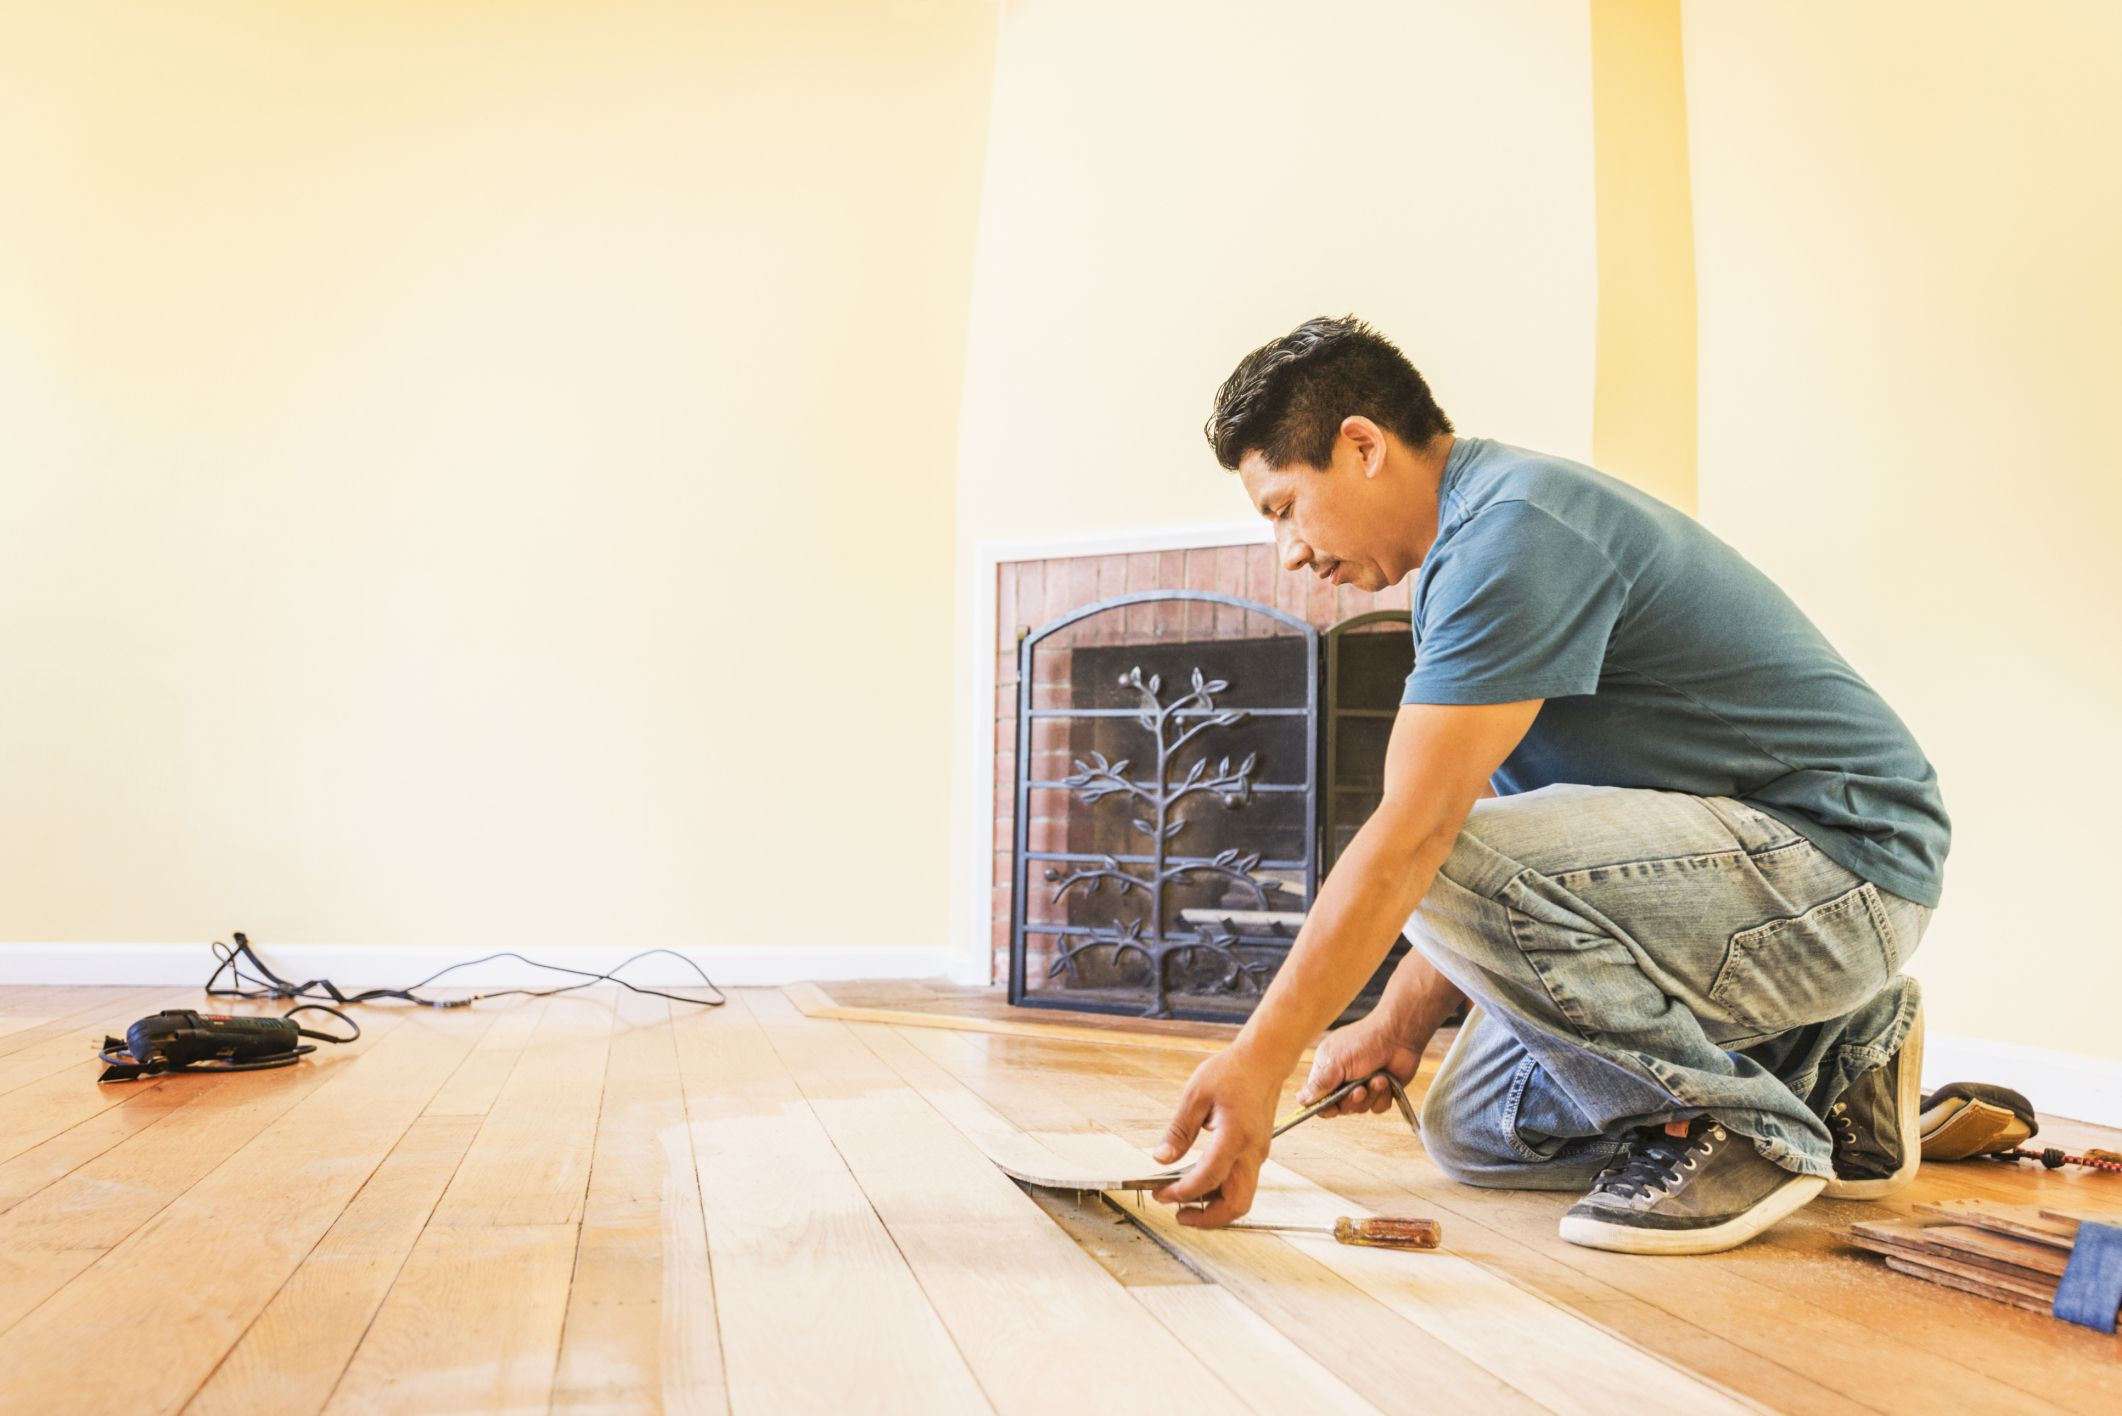 Glue Down Hardwood Floors Over Concrete Of solid Hardwood Flooring Costs for Professional Vs Diy with Installwoodflooring 592016327 56684d6f3df78ce1610a598a